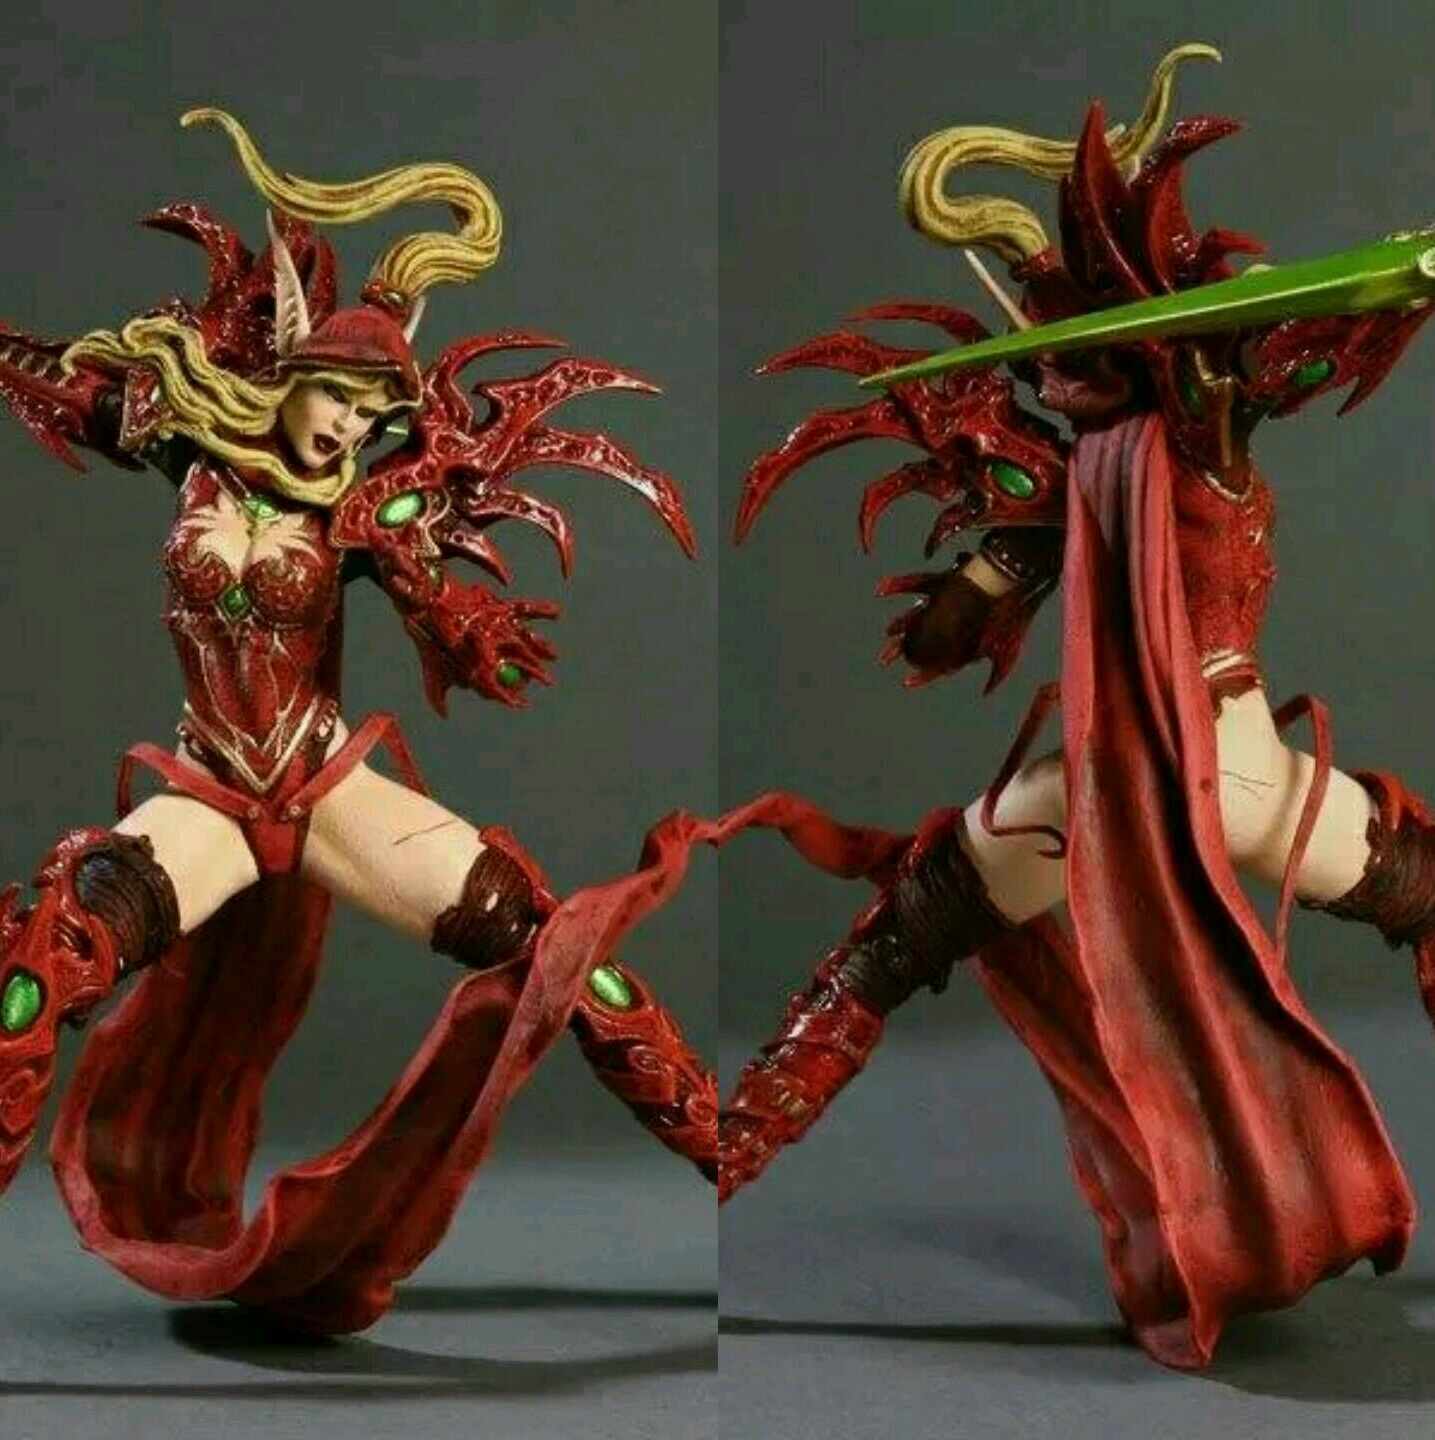 Wow world of warcraft - valeera sanguinar 15 cm - Blautelfen rogue 6.